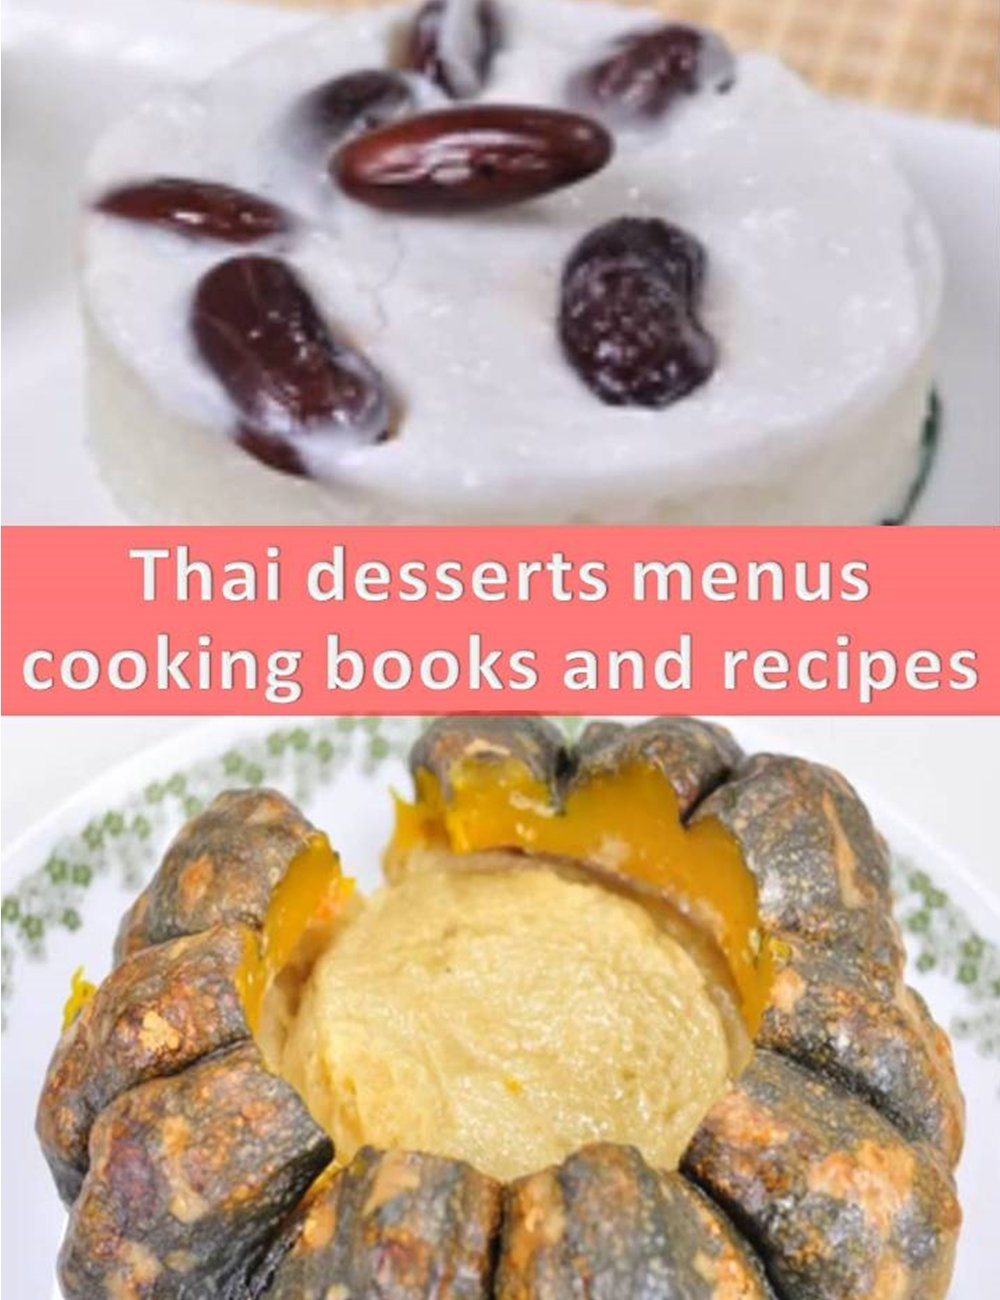 Desserts Thai Cooking Books And Recipes  English Edition